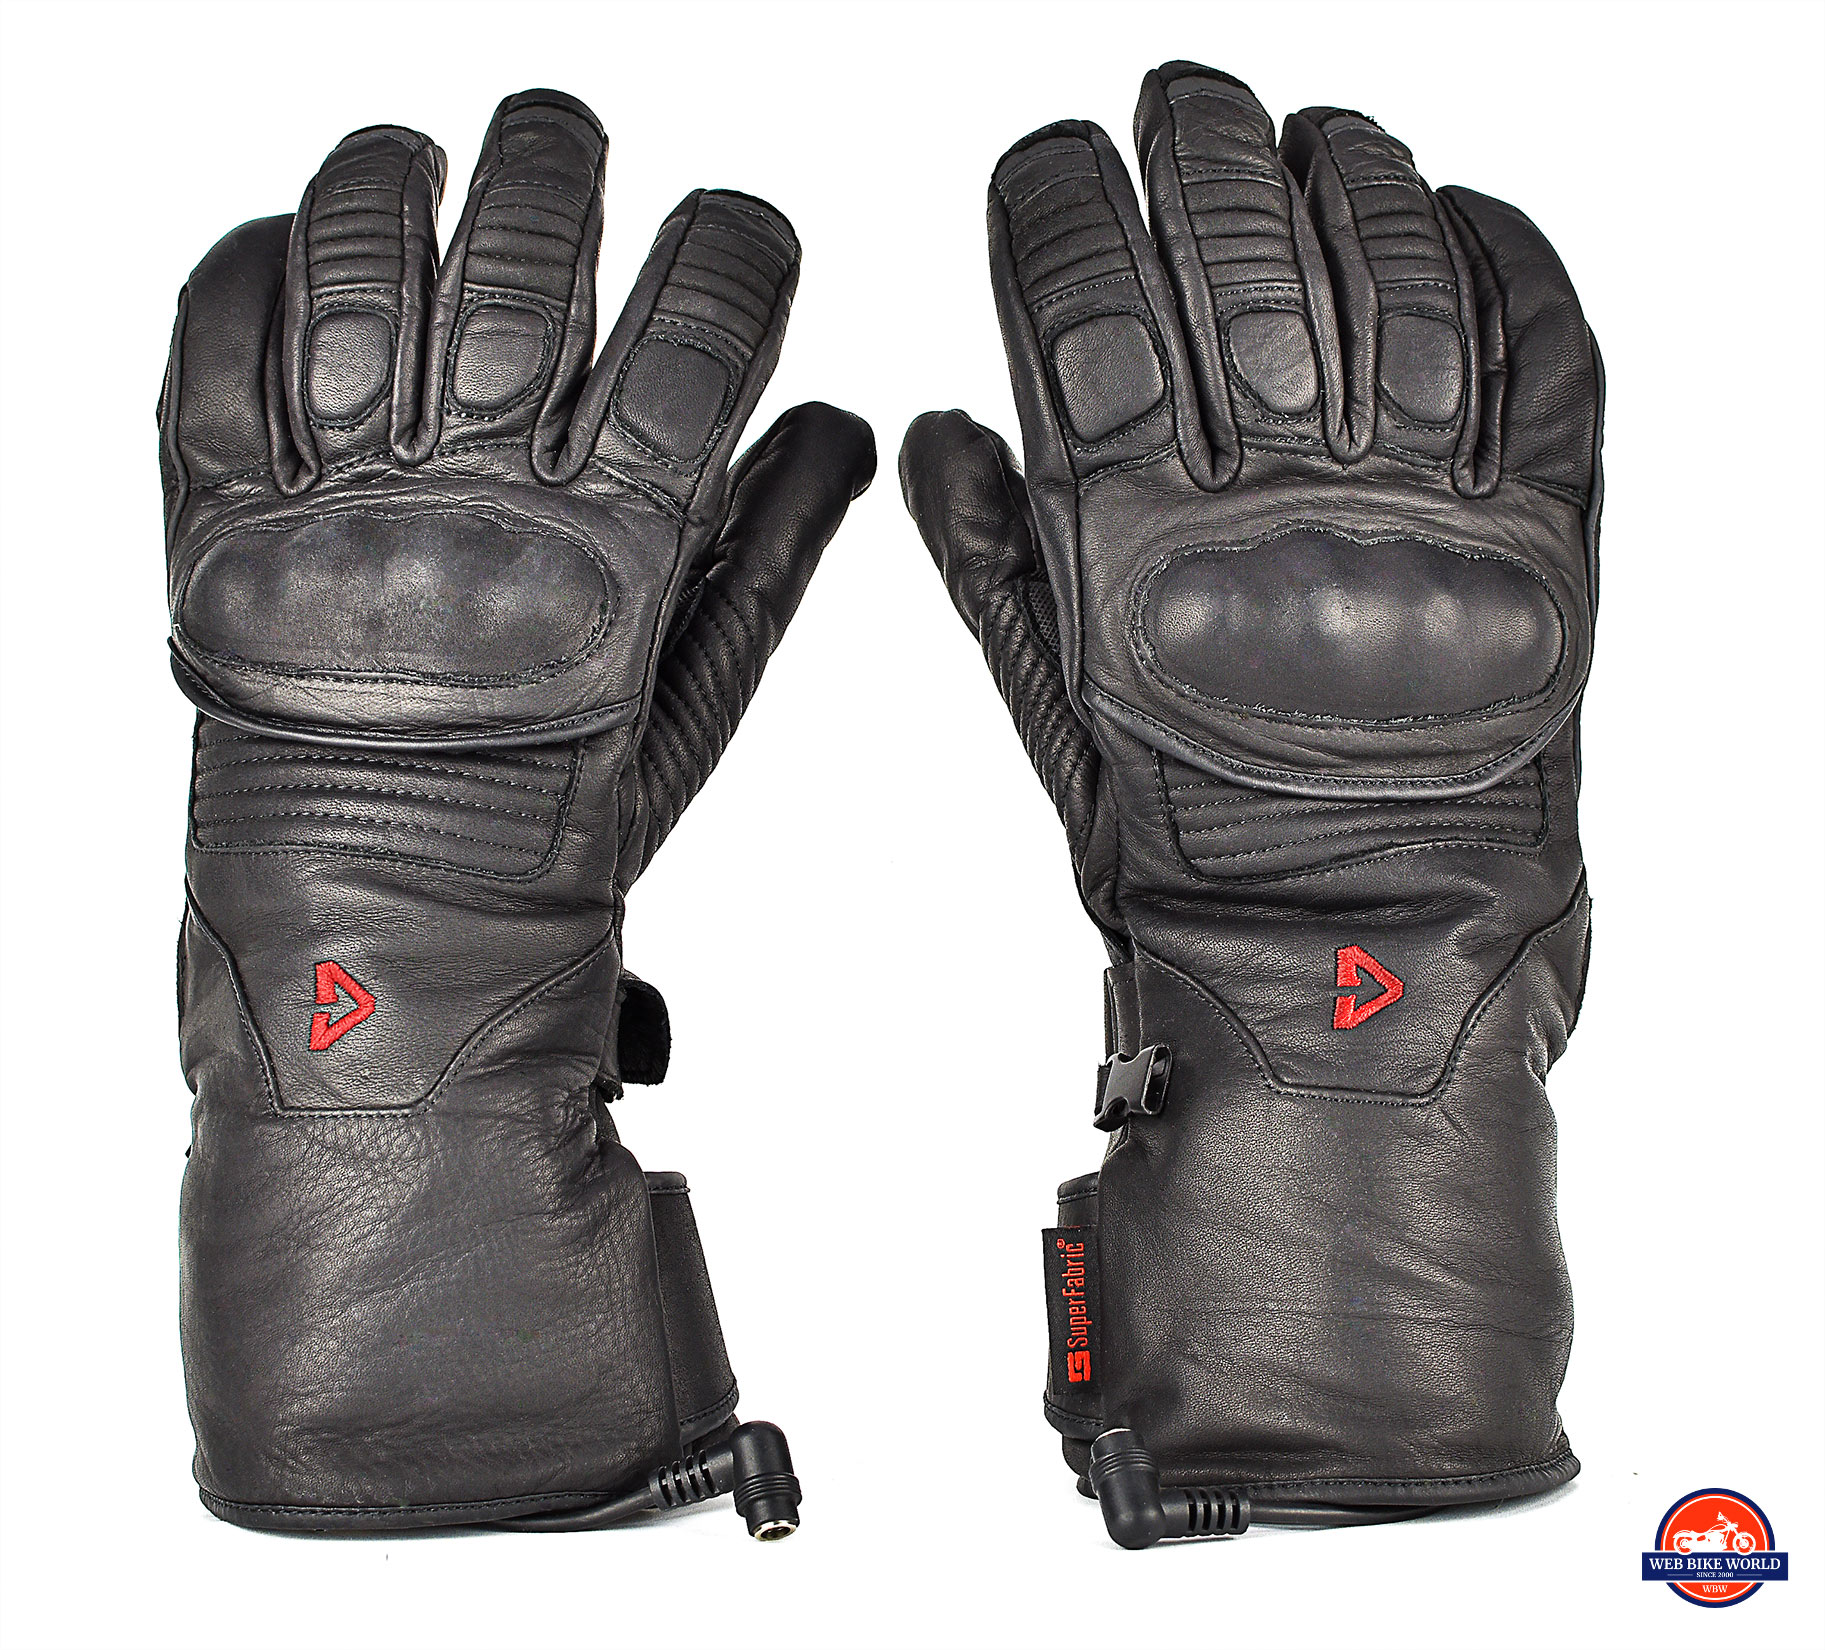 The Gerbing Vanguard heated motorcycle gloves top view.